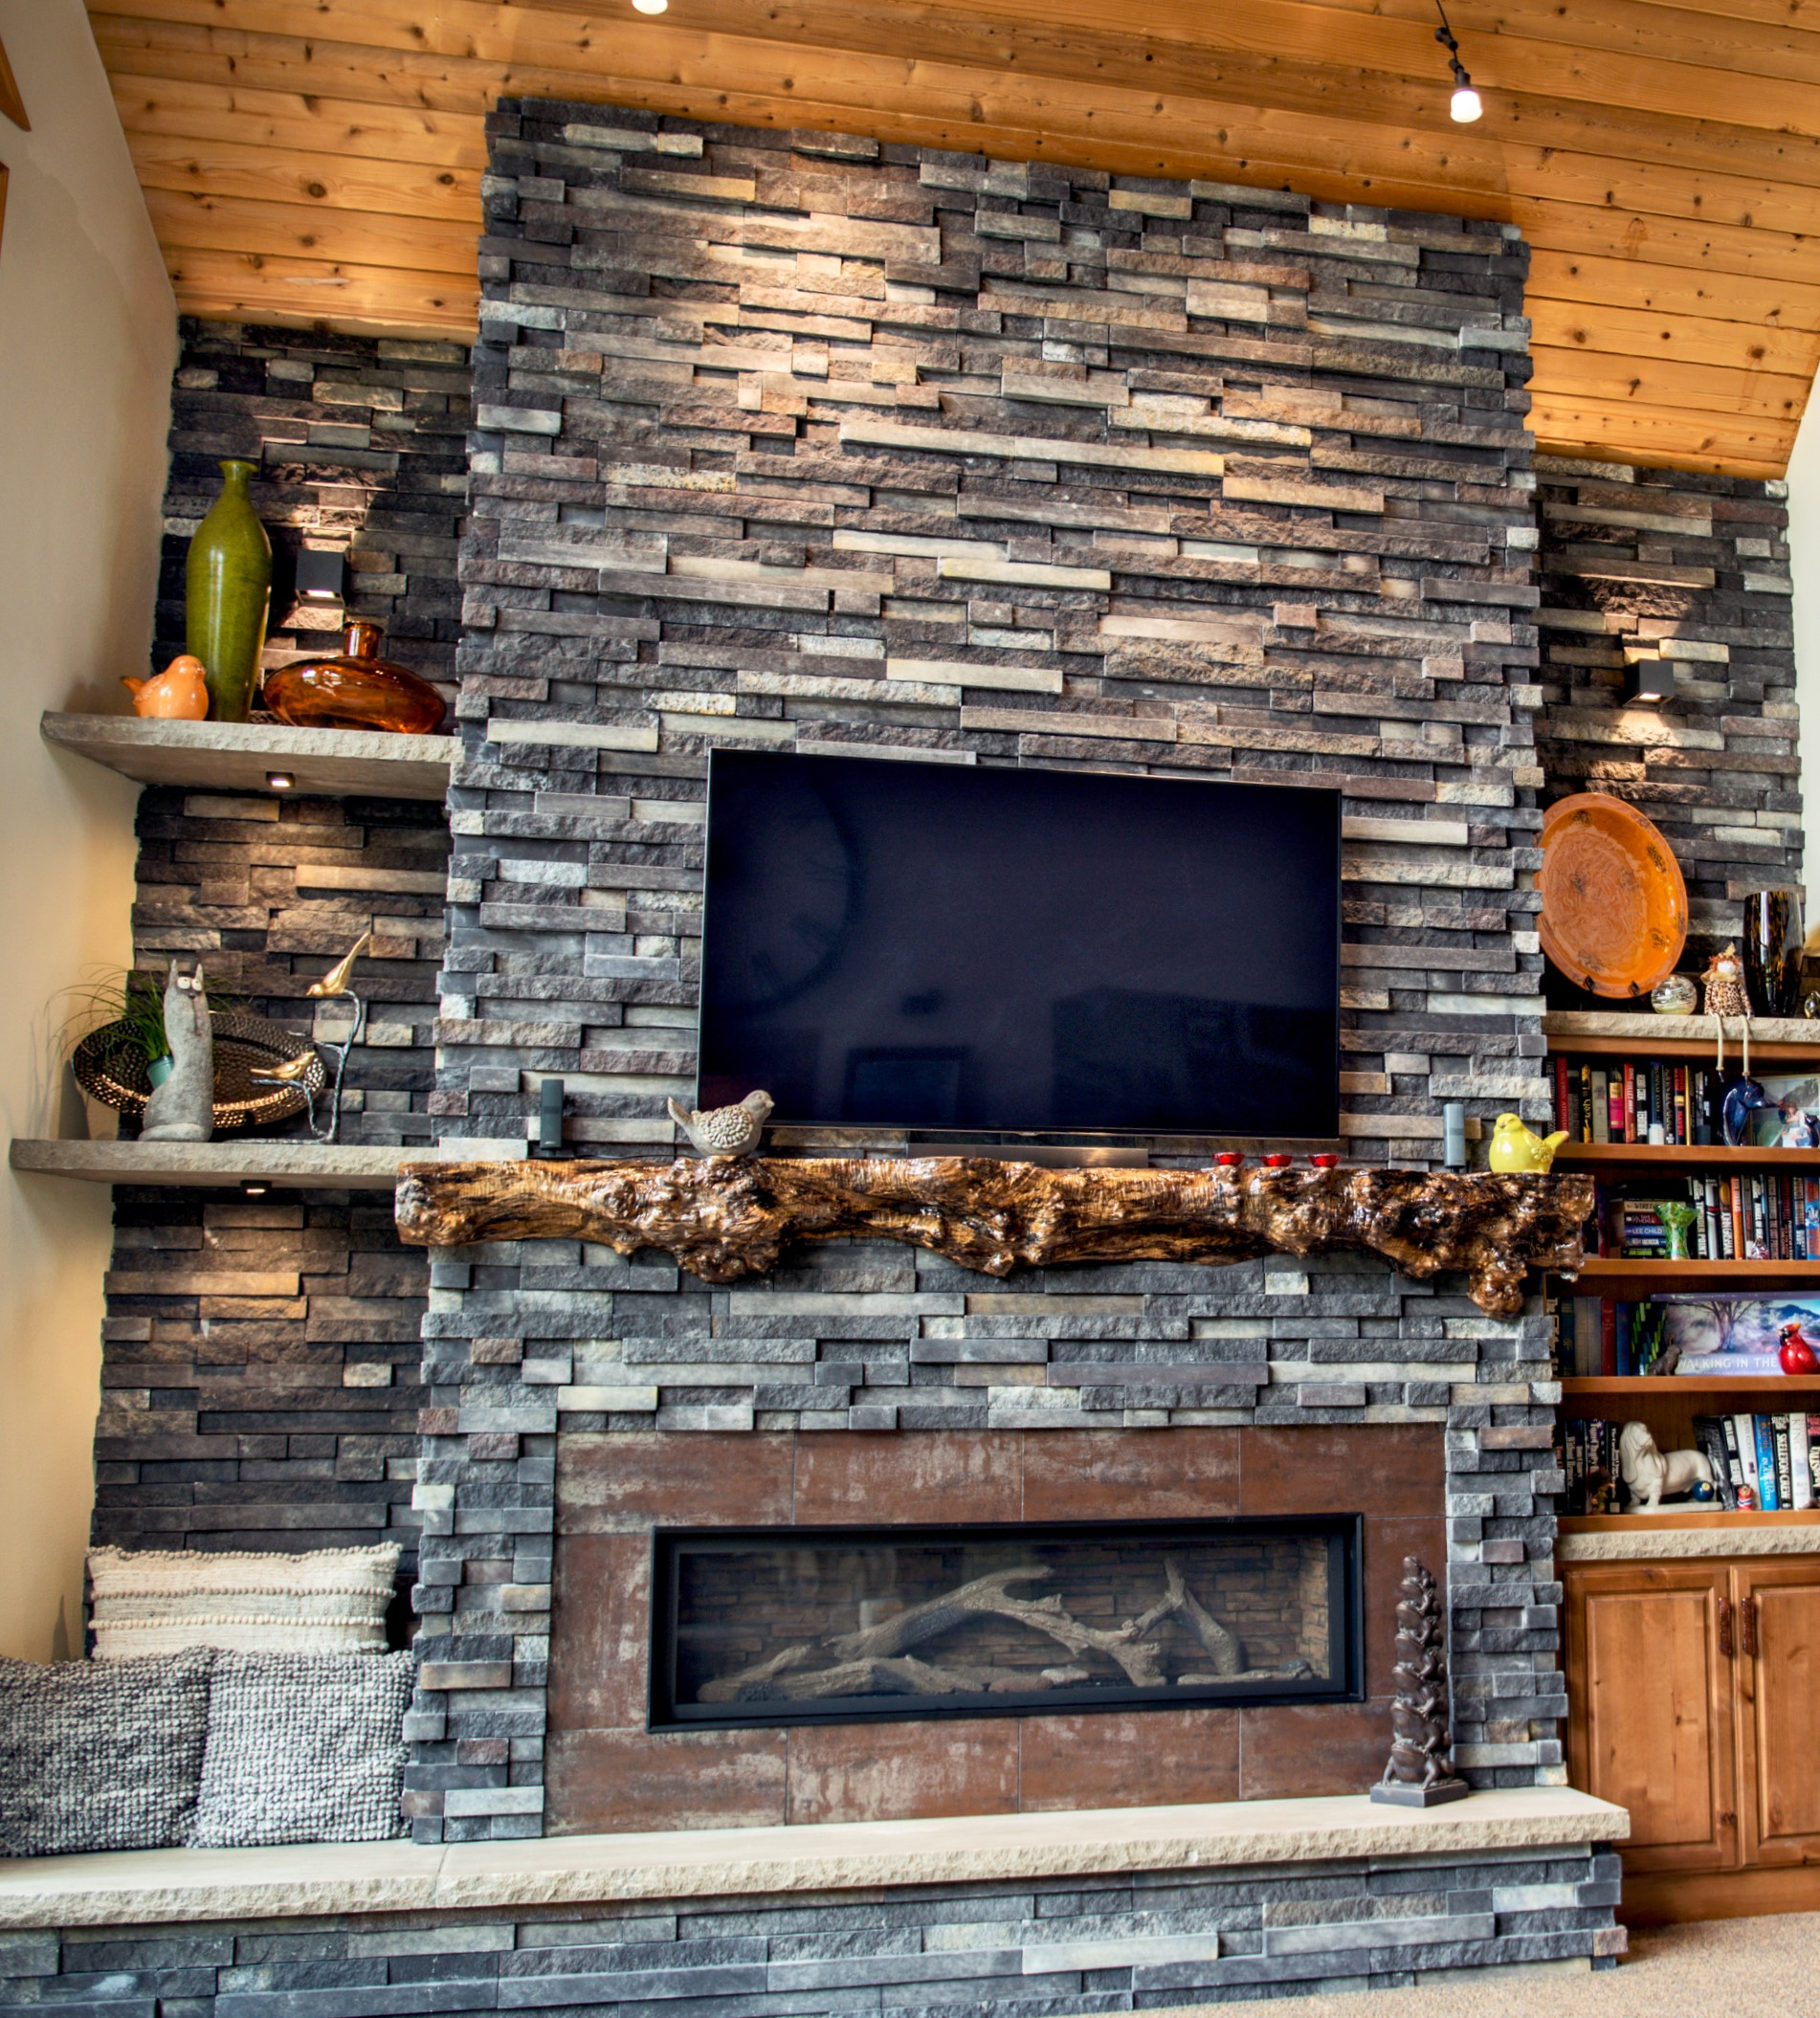 Installing Cultured Stone Fireplace Pro Fit Terrain Ledgestone From Cultured Stone Canadian Stone